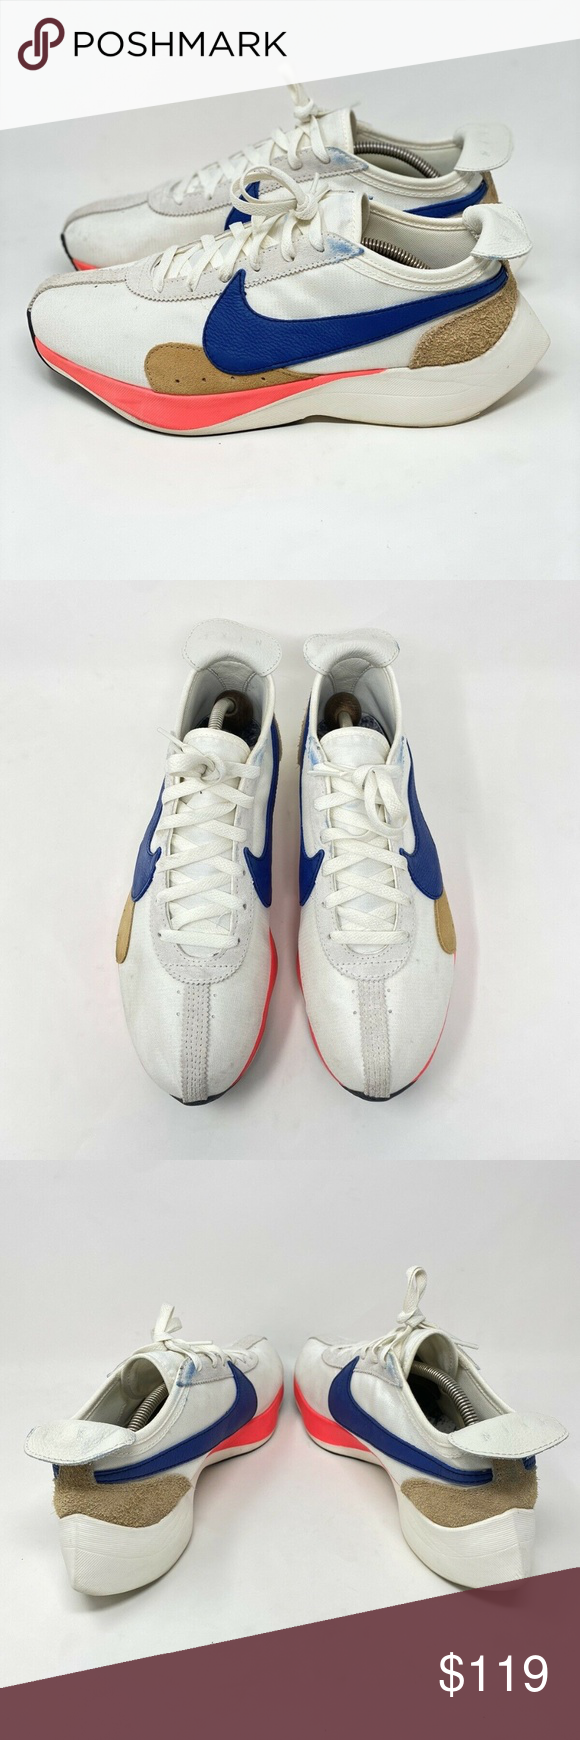 Nike Moon Racer Qs Sail Nike Moon Racer Qs Sail Mens Size 11 5 Solar Blue Style Bv7779 100 Used Shoes In Good Condition Has Small S Nike Blue Fashion Sneakers